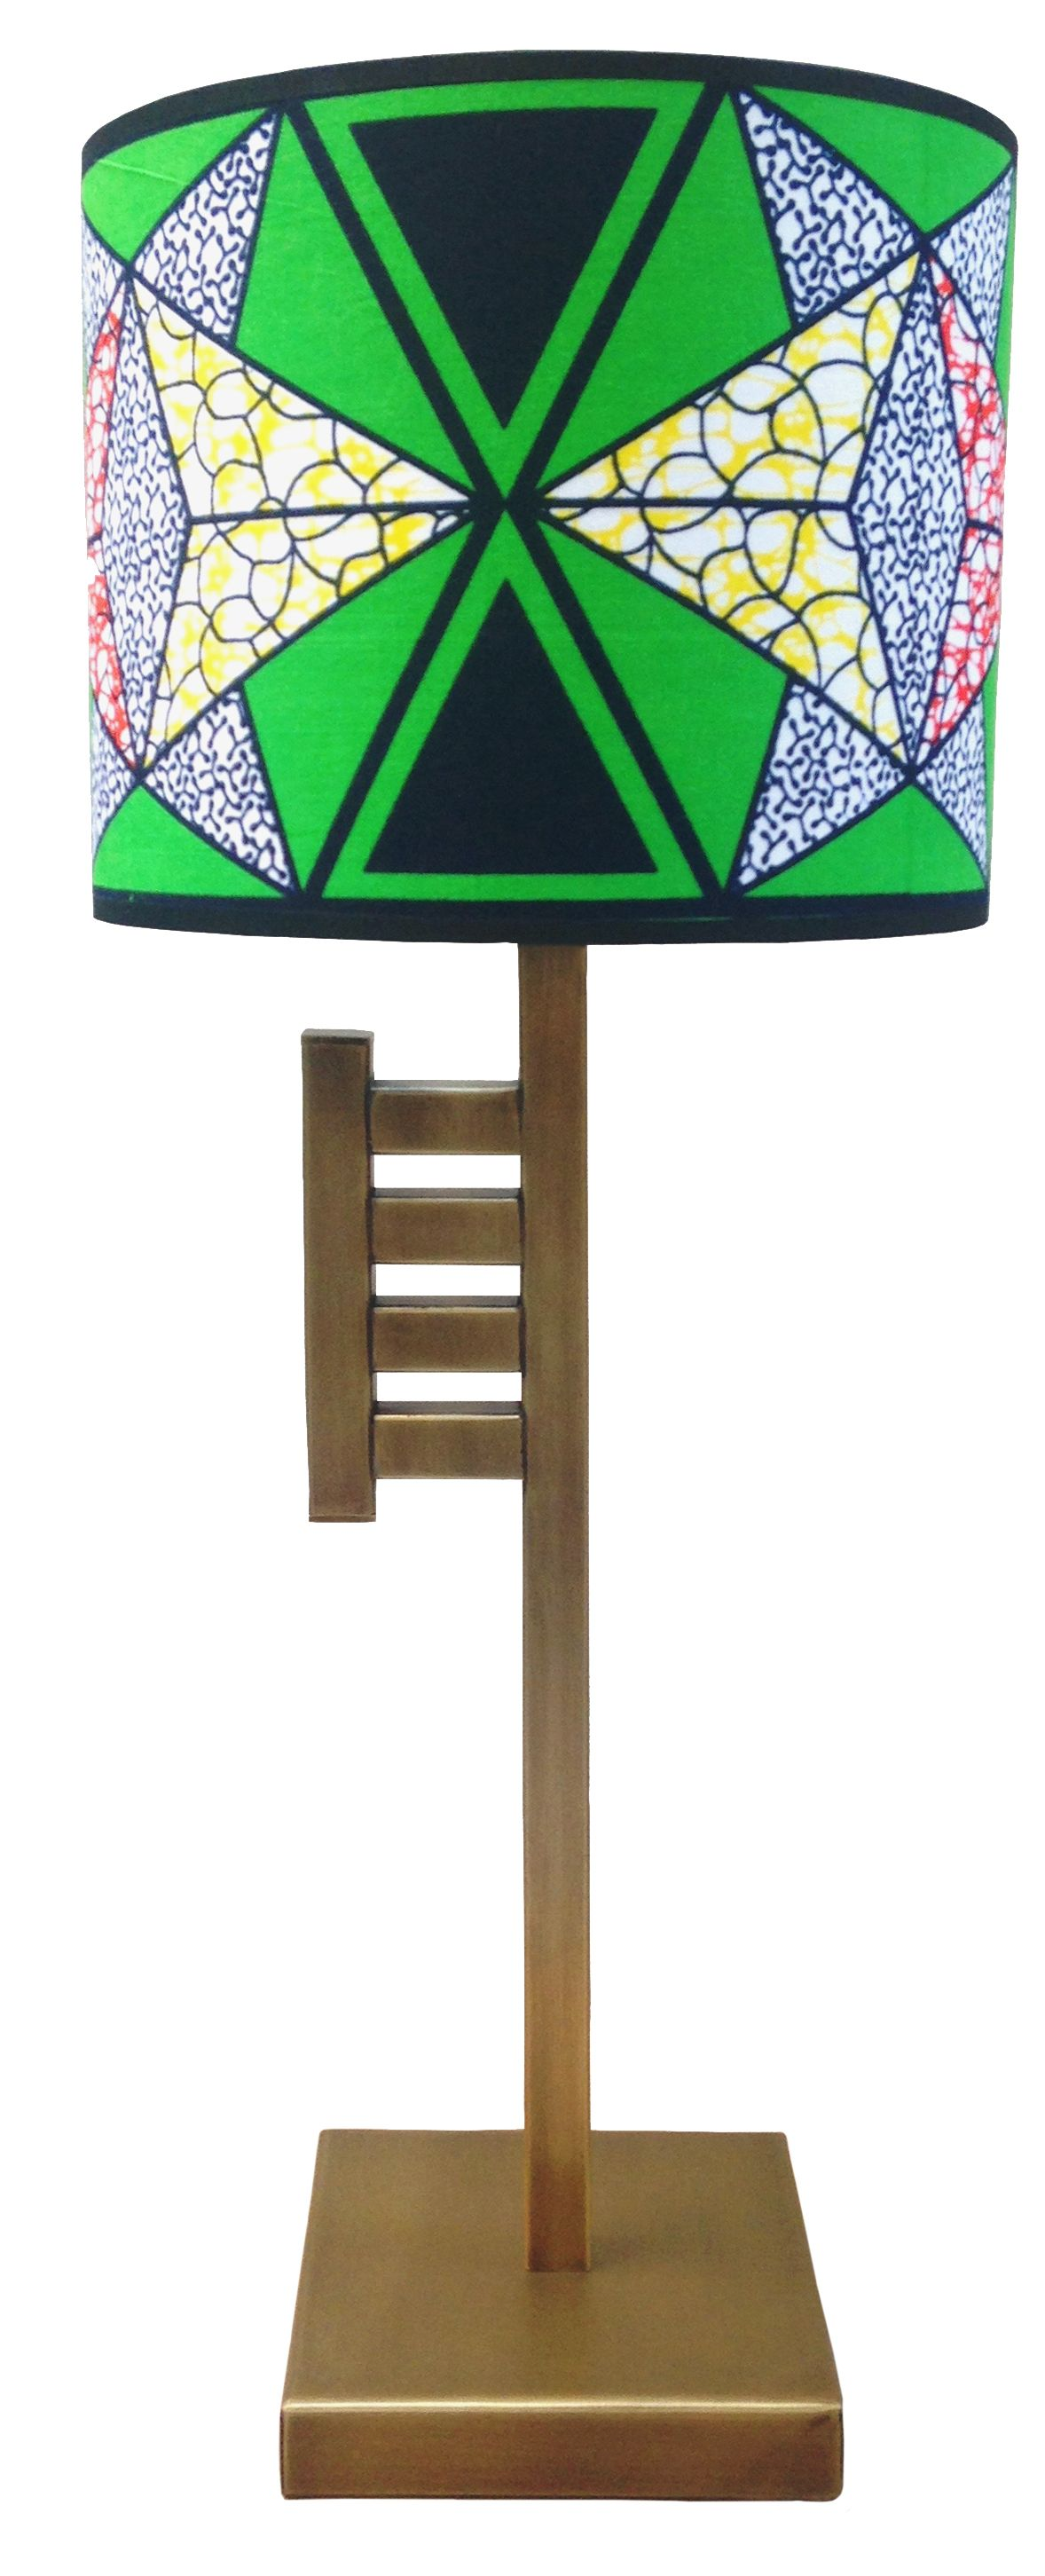 Owuo Atwedee Lamp - The ladder-like form is insipired by the 'Owuo Atwedee' Adinkra symbol used by the Akan people of Ghana. It represents the ladder of death and symbolises the futile nature of life. The 'Owuo Atwedee' lamp is a 3rd Culture design inspired by Ghana, made in Turkey.